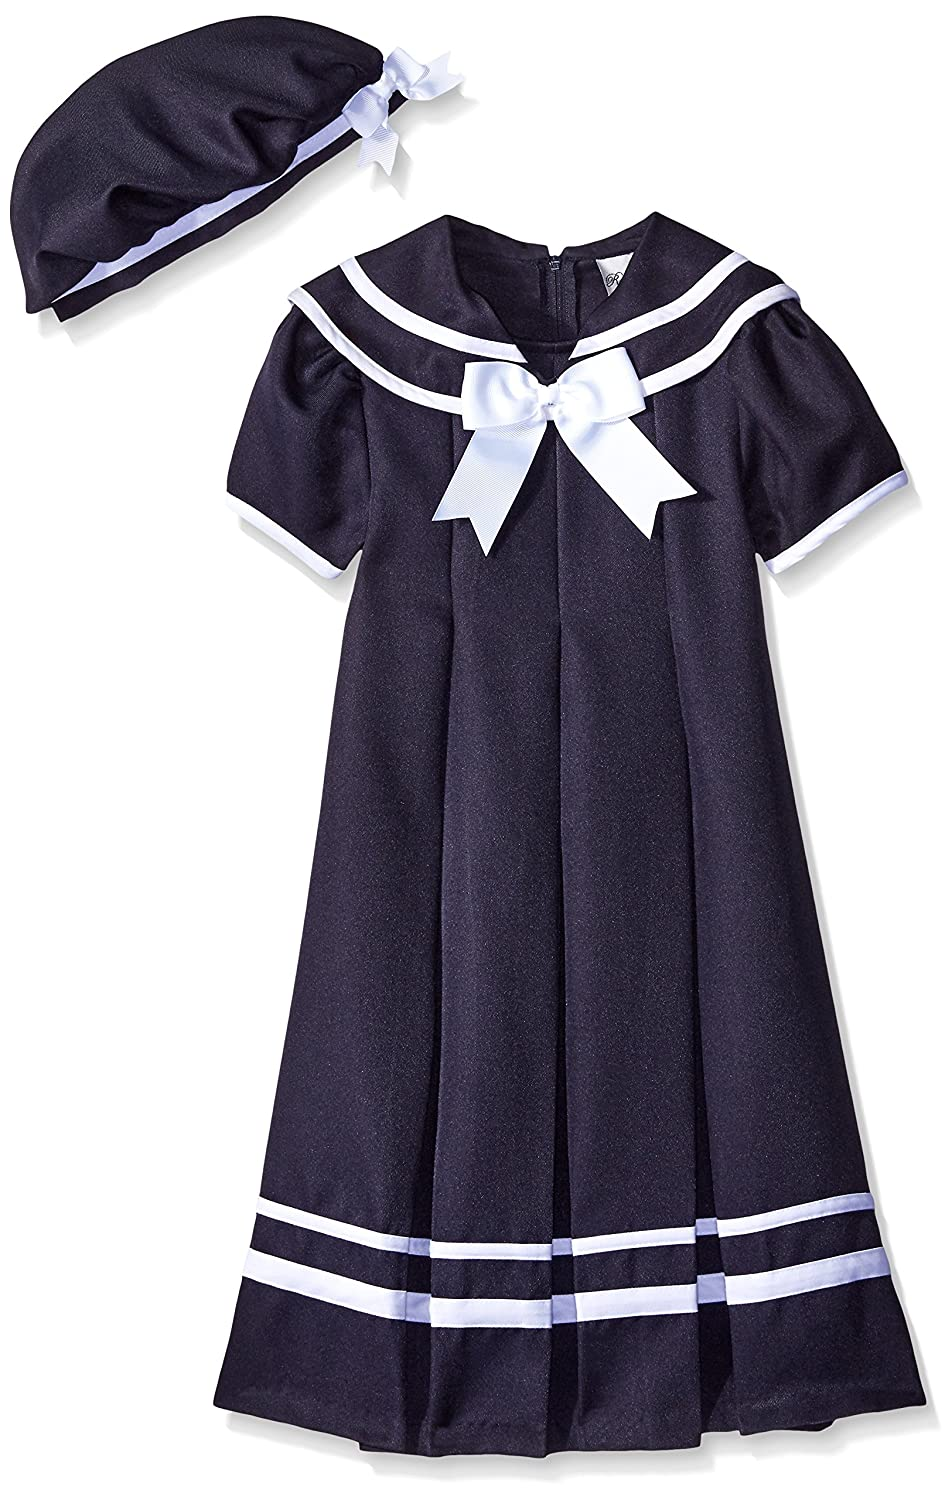 1920s Children Fashions: Girls, Boys, Baby Costumes Rare Editions Big Girls Navy Nautical Dress $29.99 AT vintagedancer.com